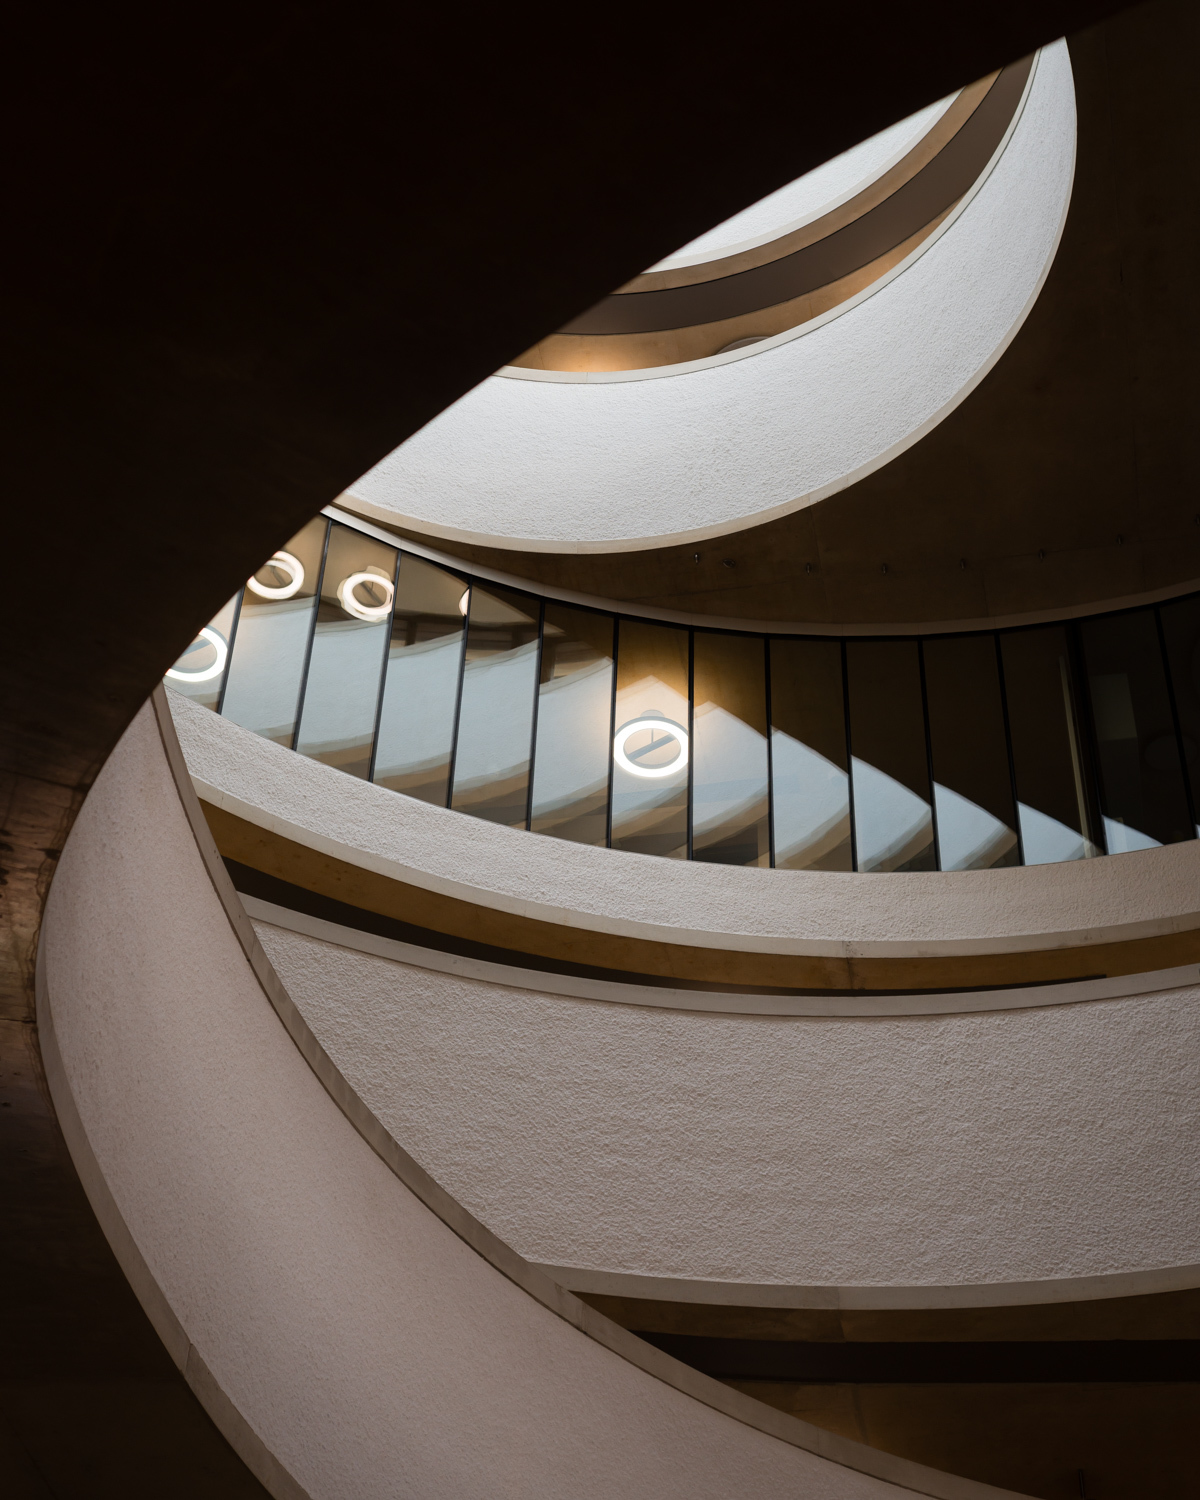 Blavatnik School of Goverment by Herzog & De Meuron in Oxford UK. Courtesy of Jim Stephenson.